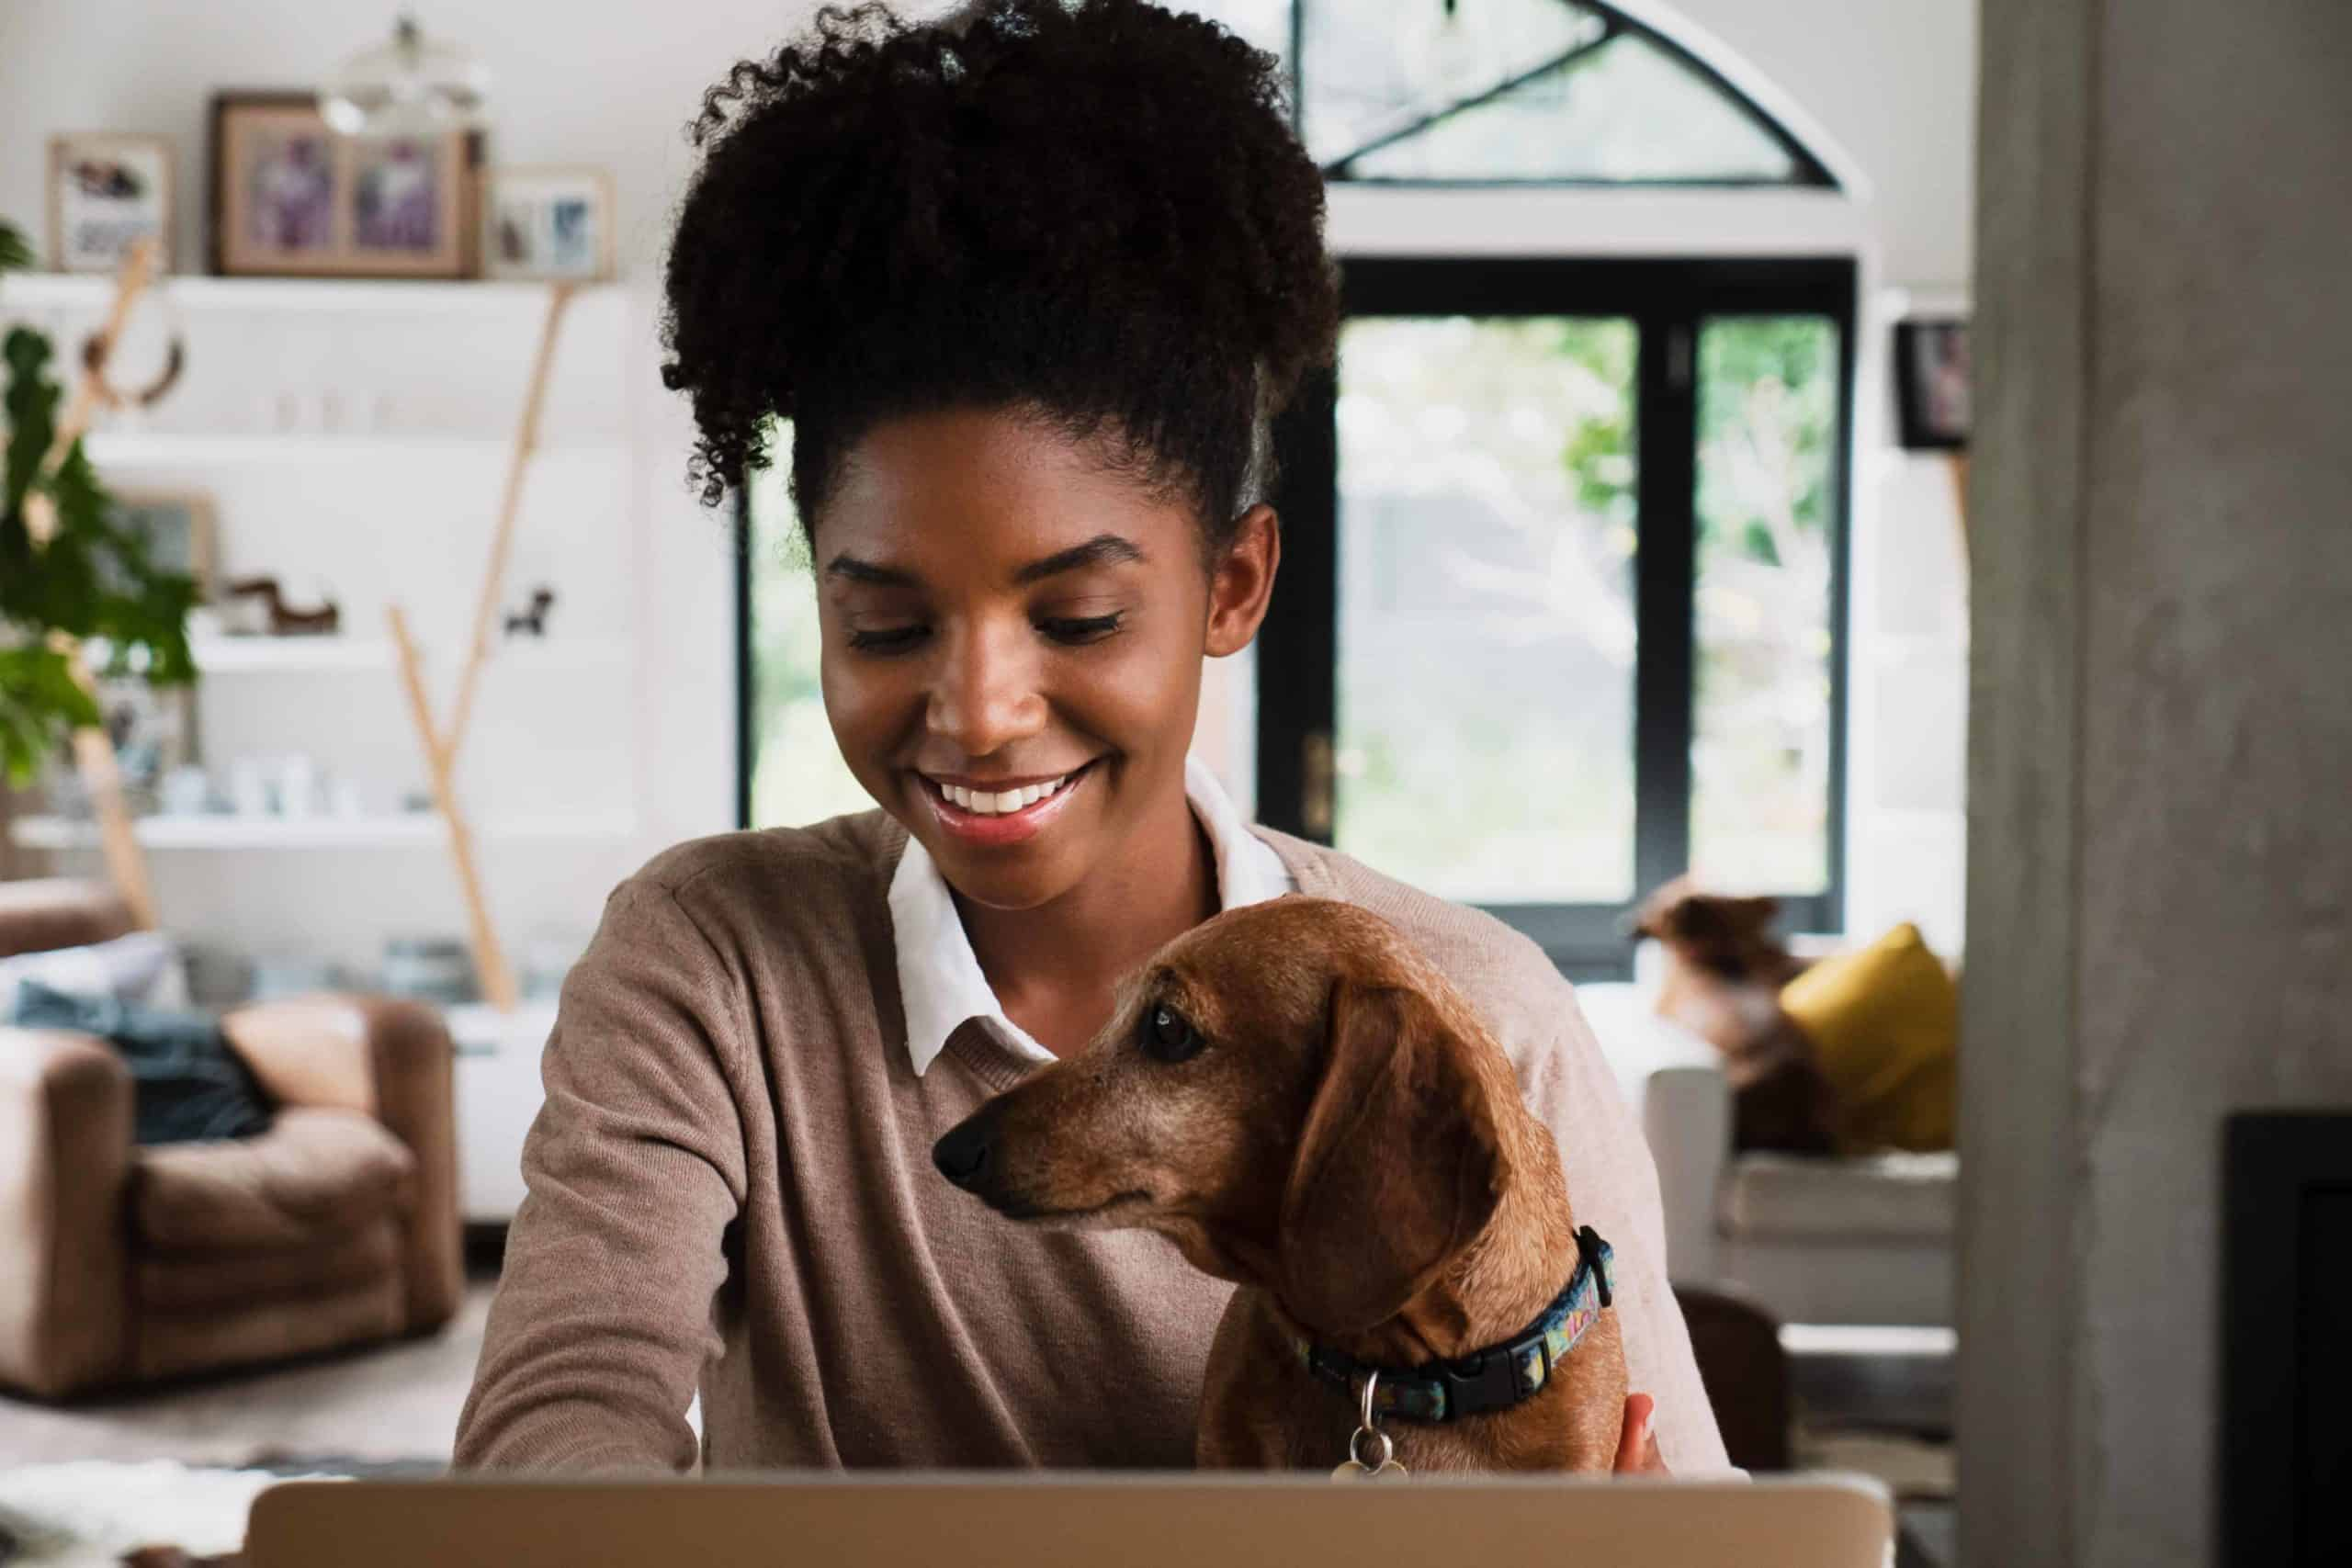 Woman works remotely while holding Dachshund on her lap.